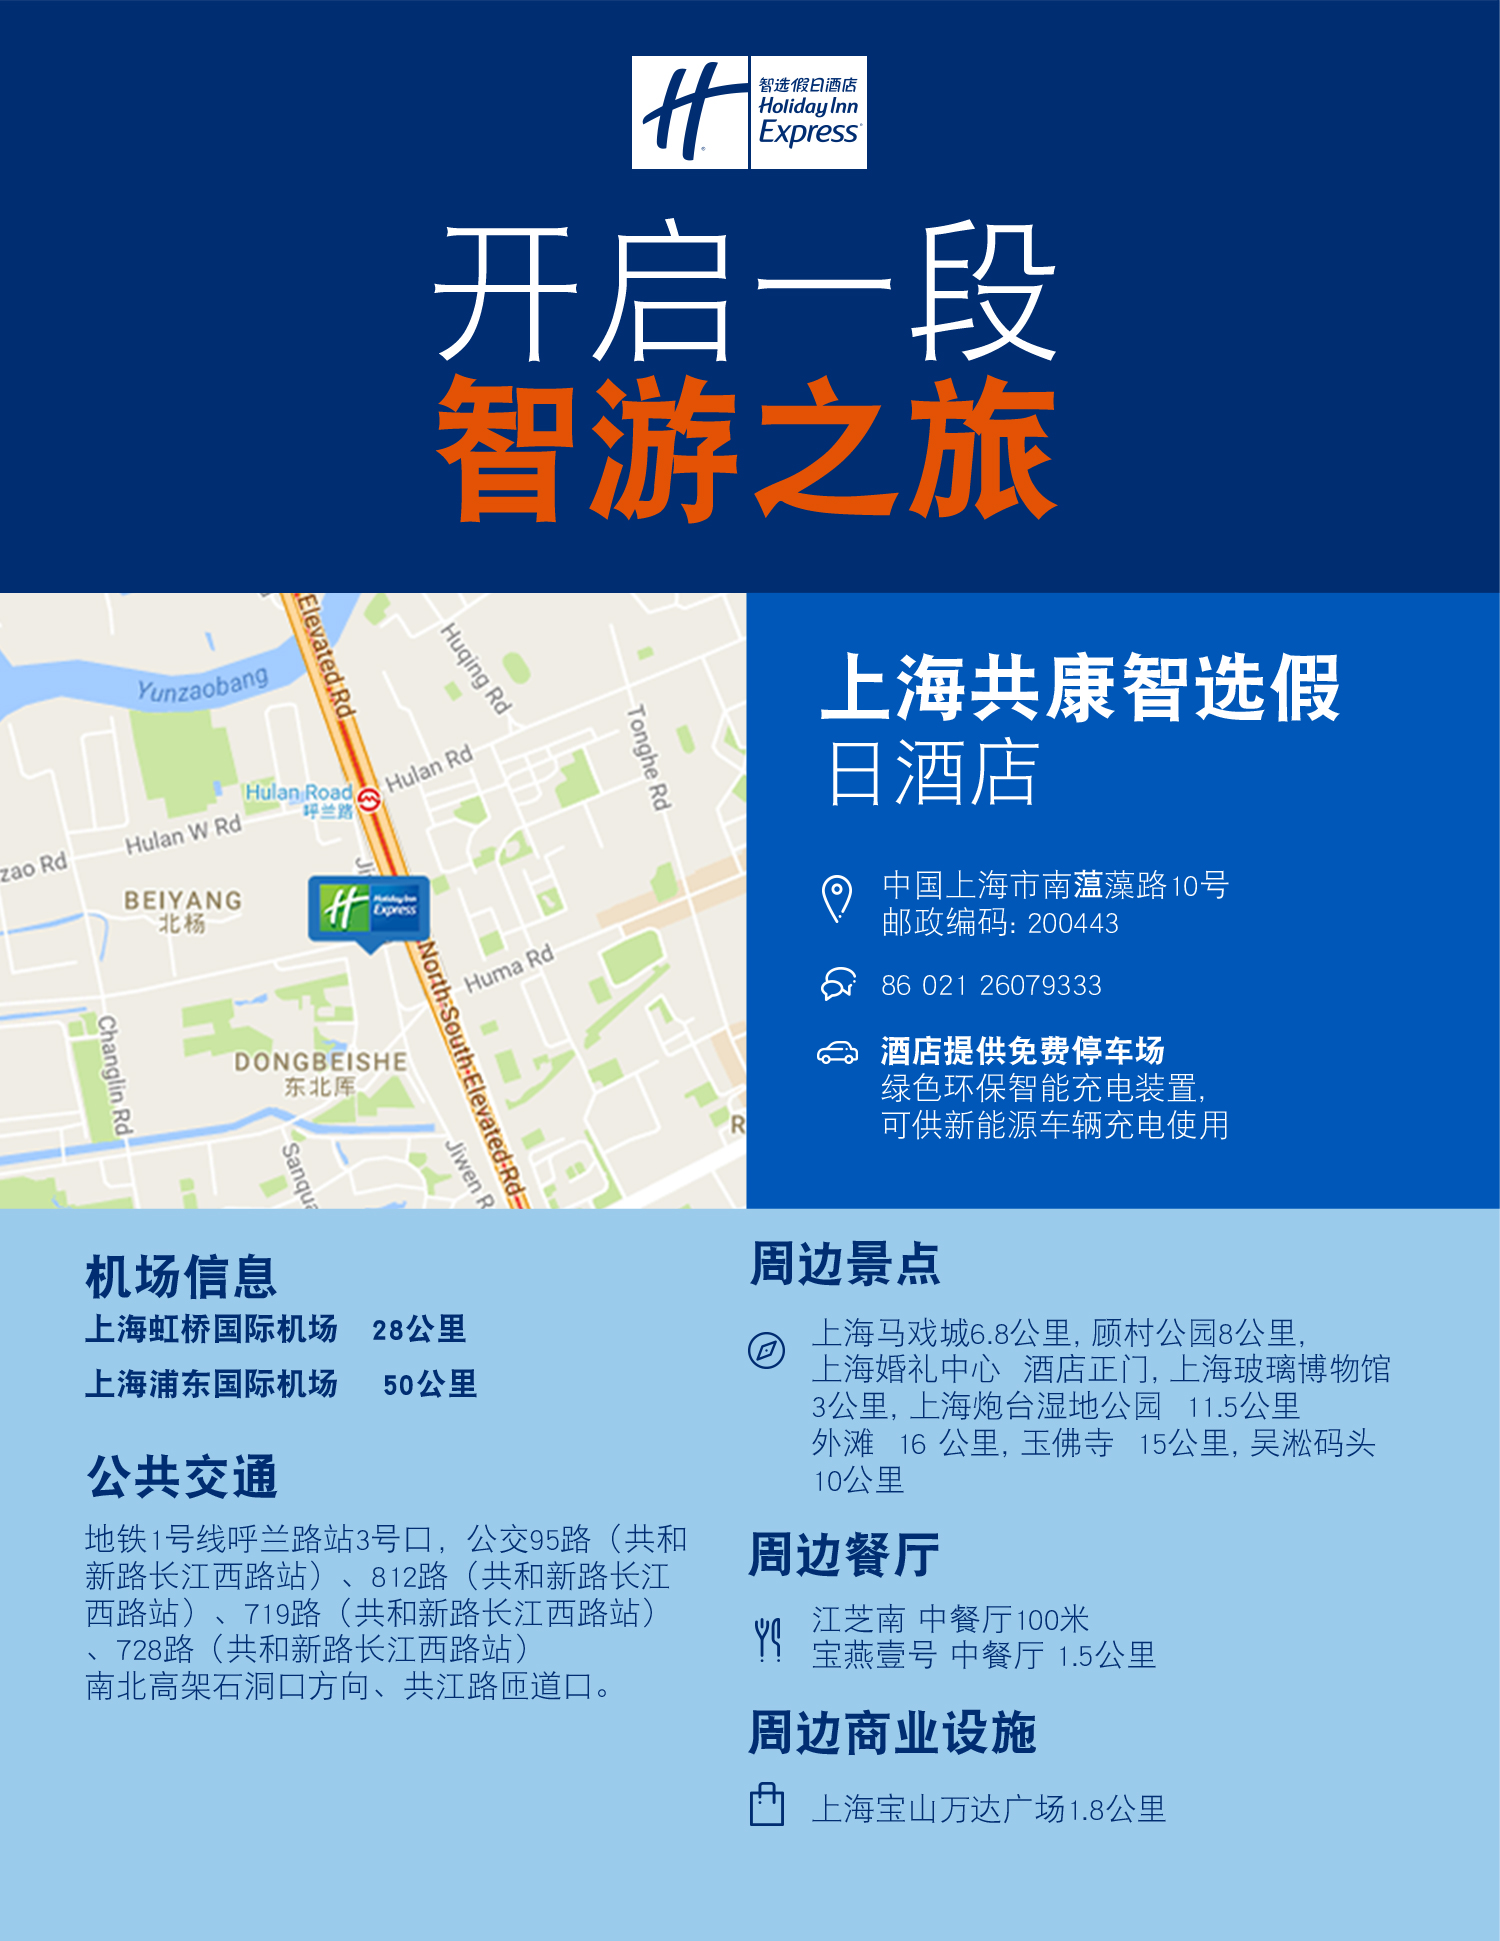 The first page of the Chinese printed smartguide, featuring blue sections and a bright orange headline at the top.